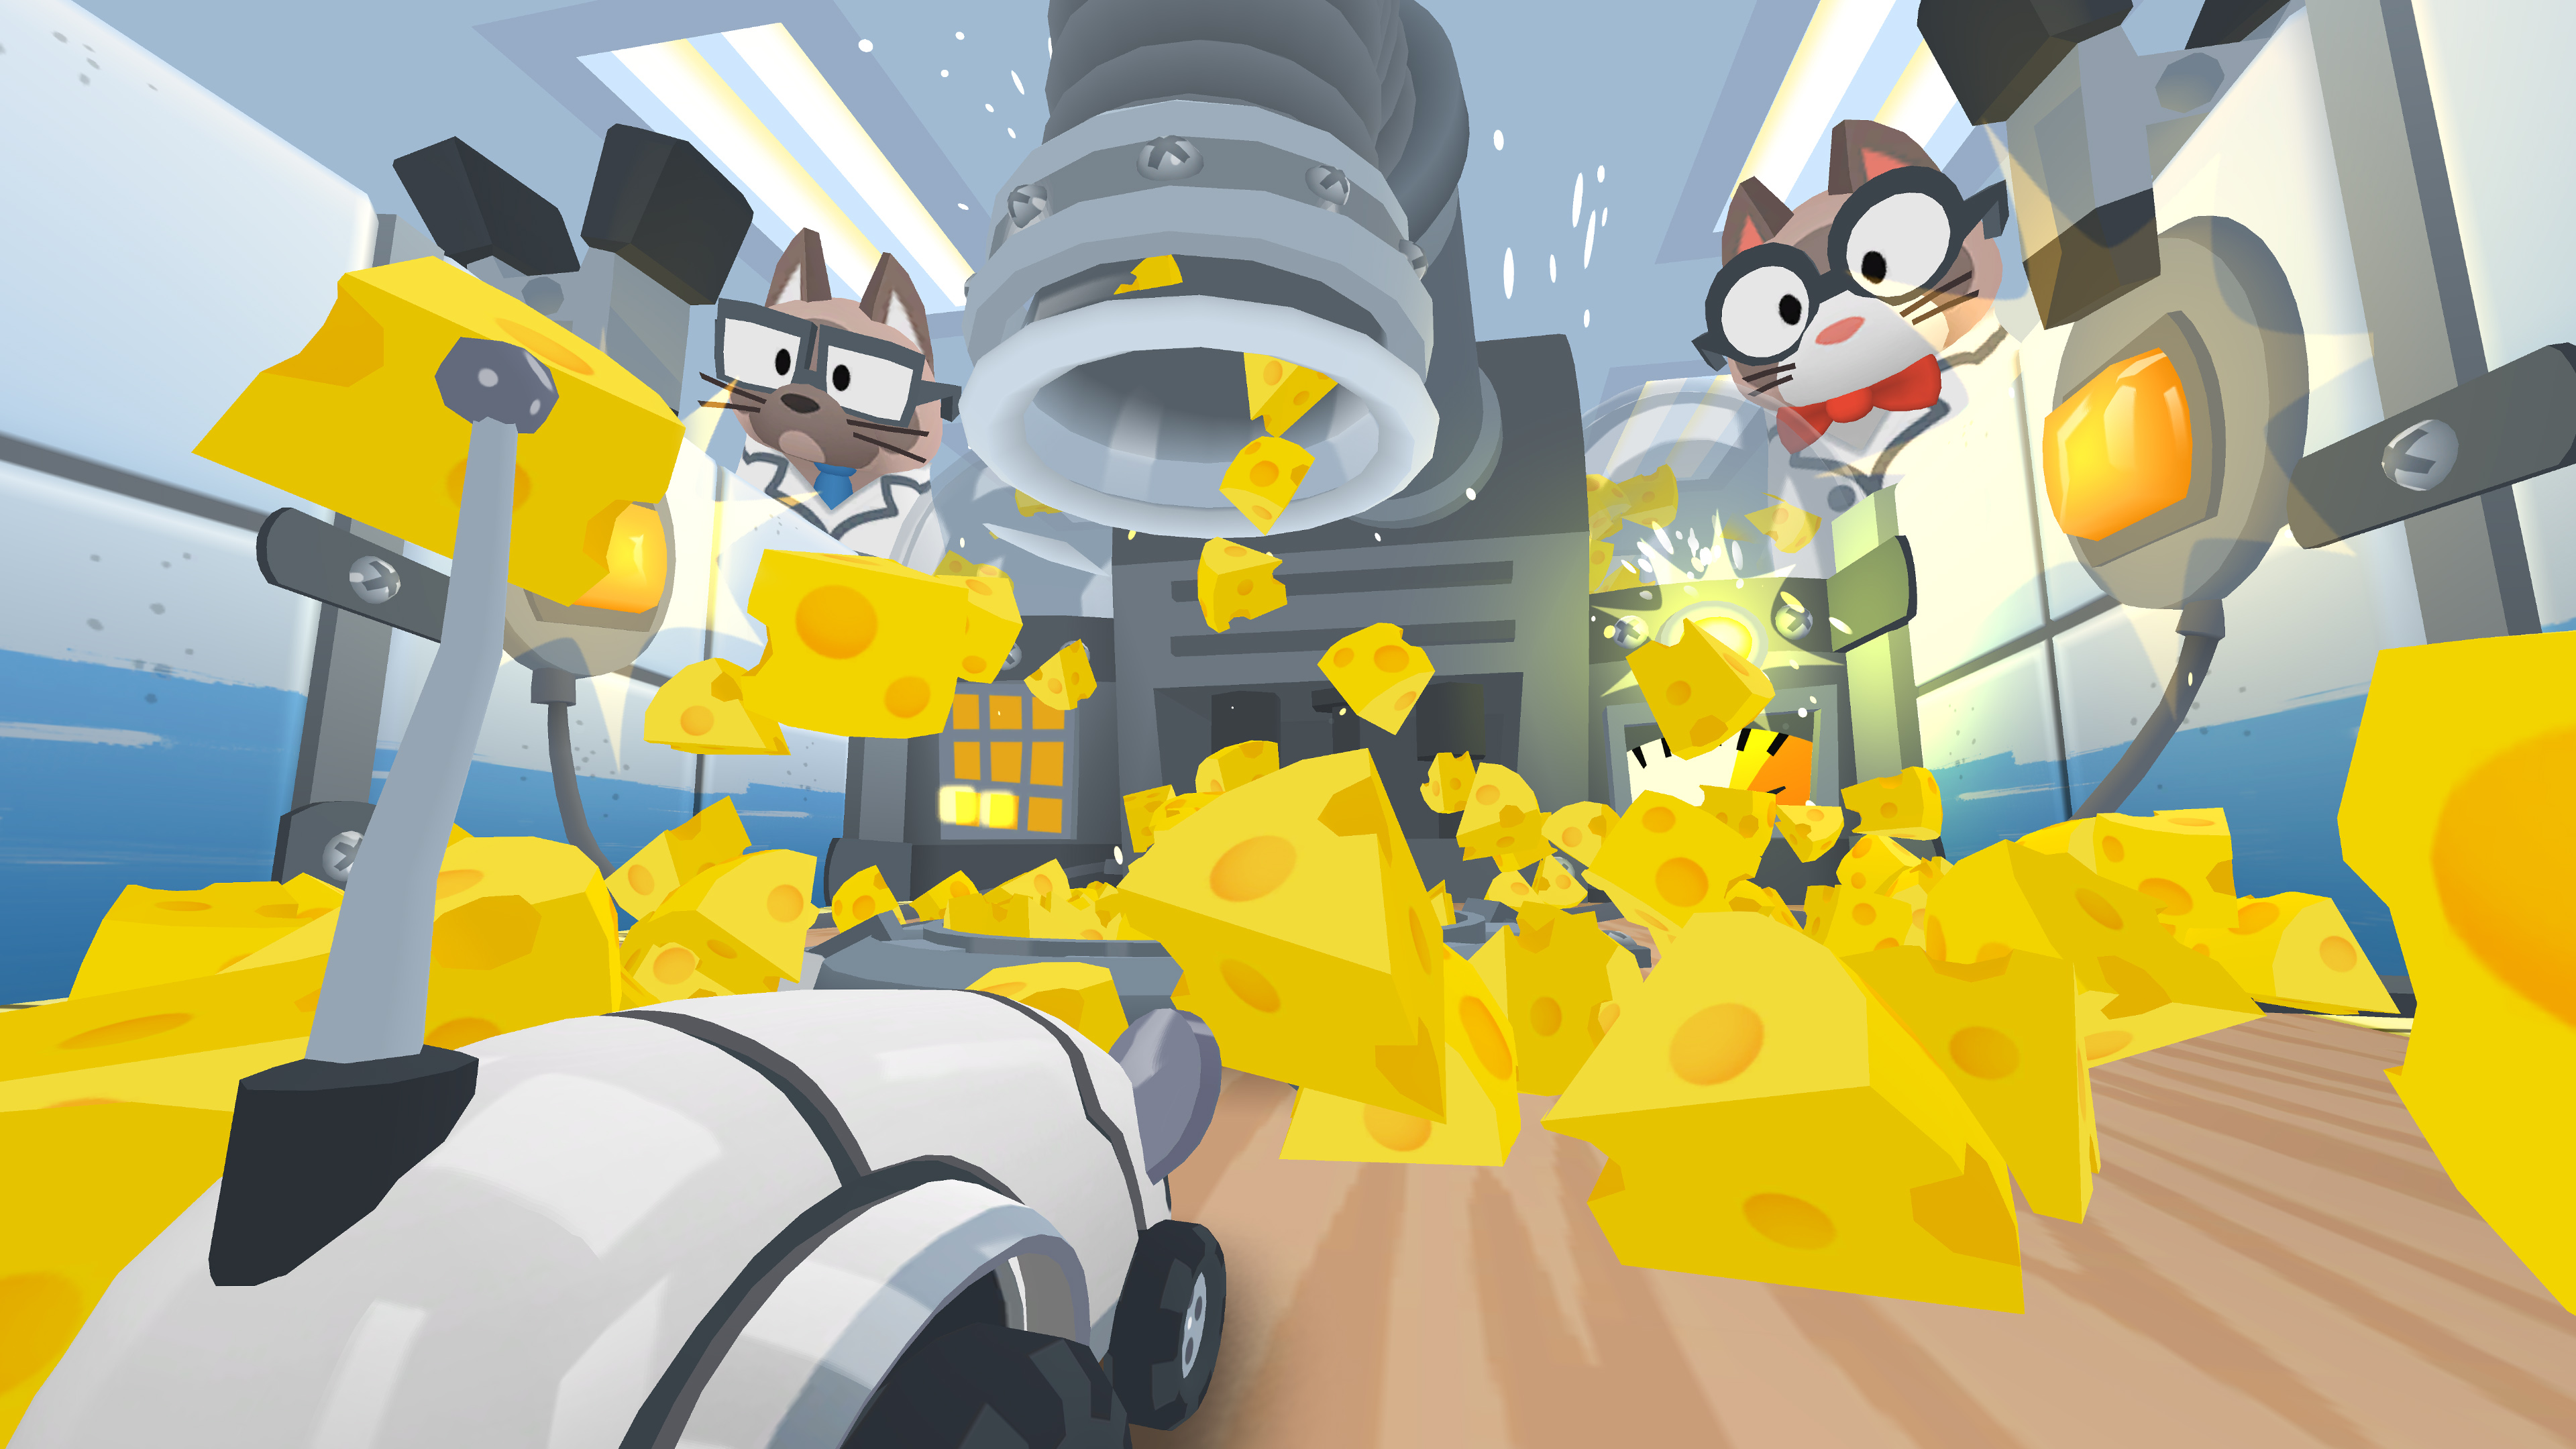 Скриншот №4 к MouseBot Escape from CatLab